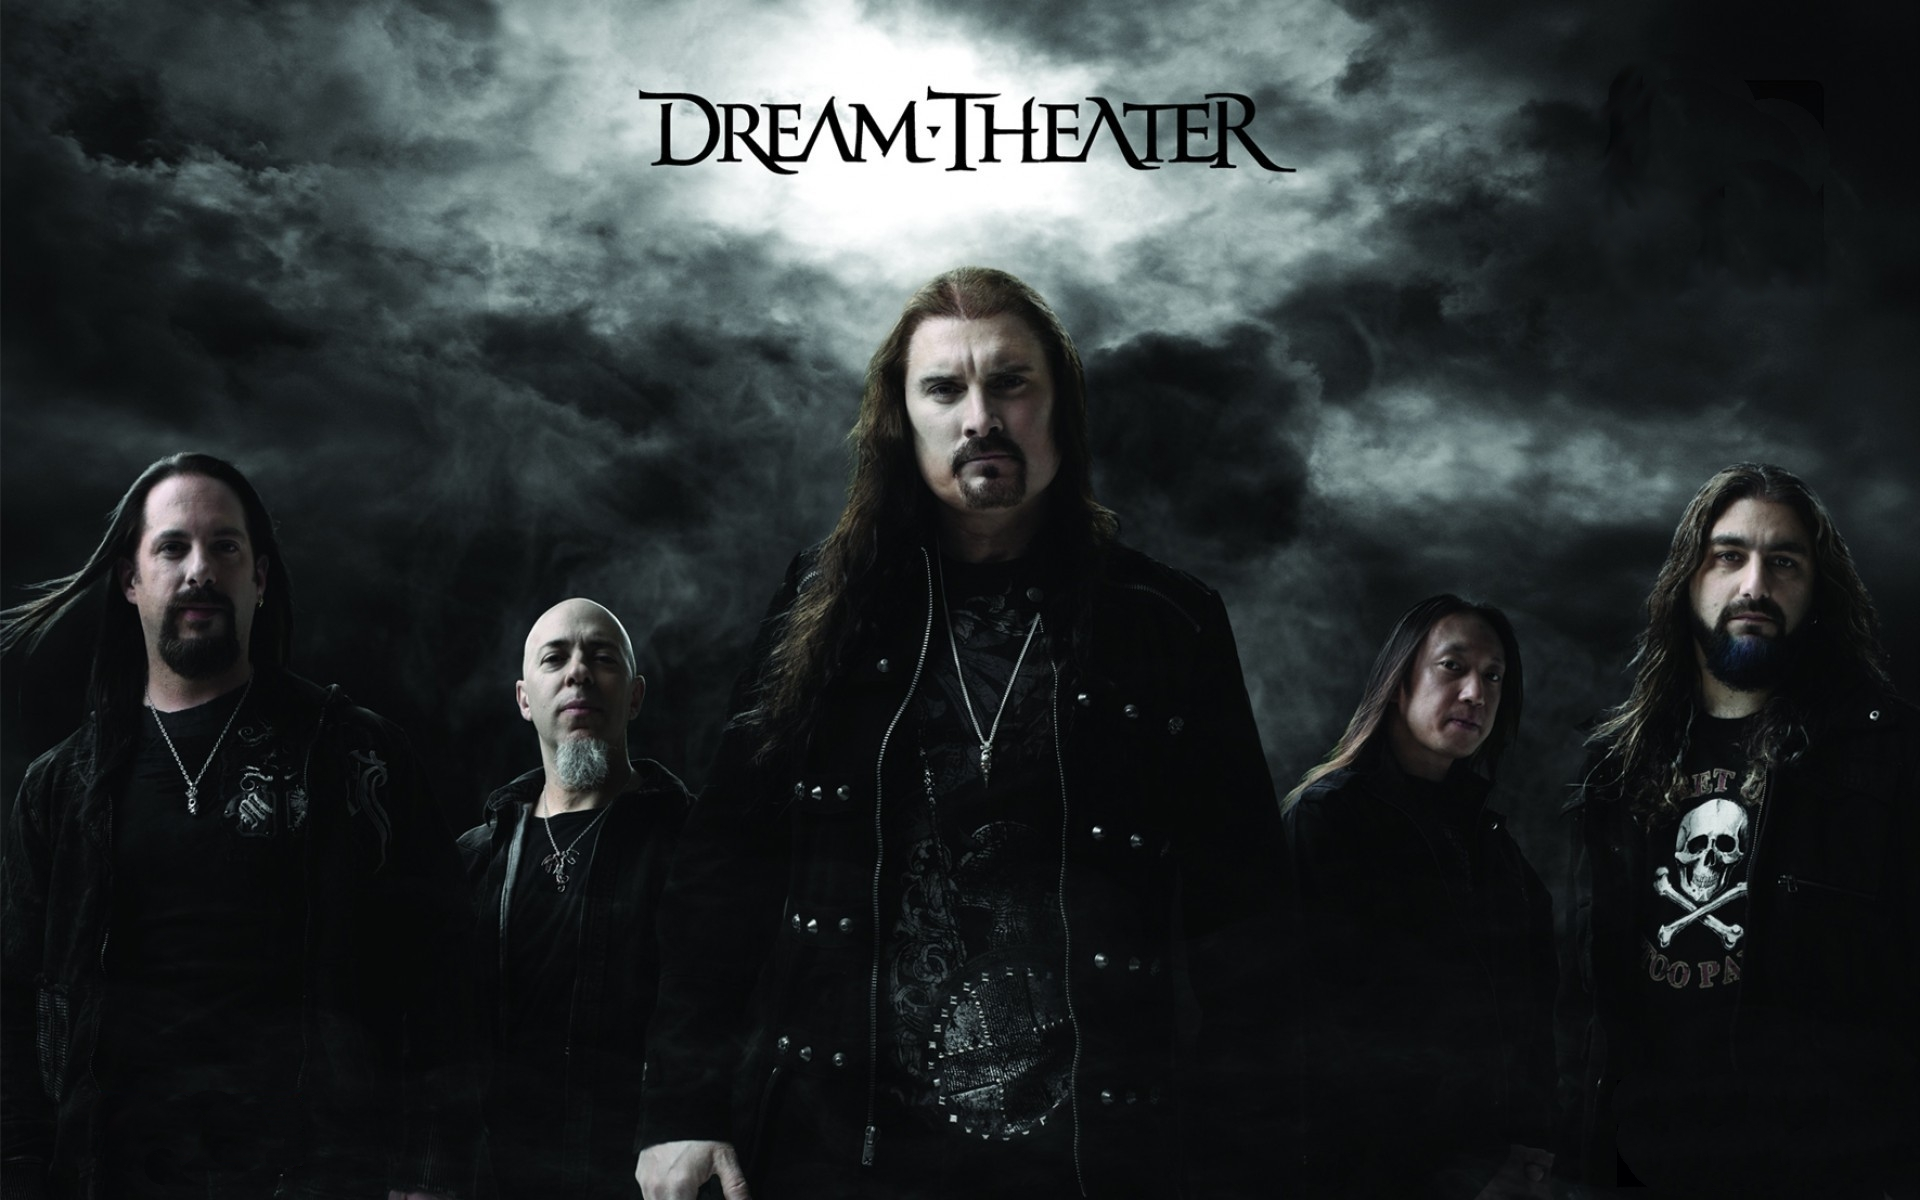 Best Of Dream Theater Wallpapers Hd For: Dream Theater Full HD Wallpaper And Background Image